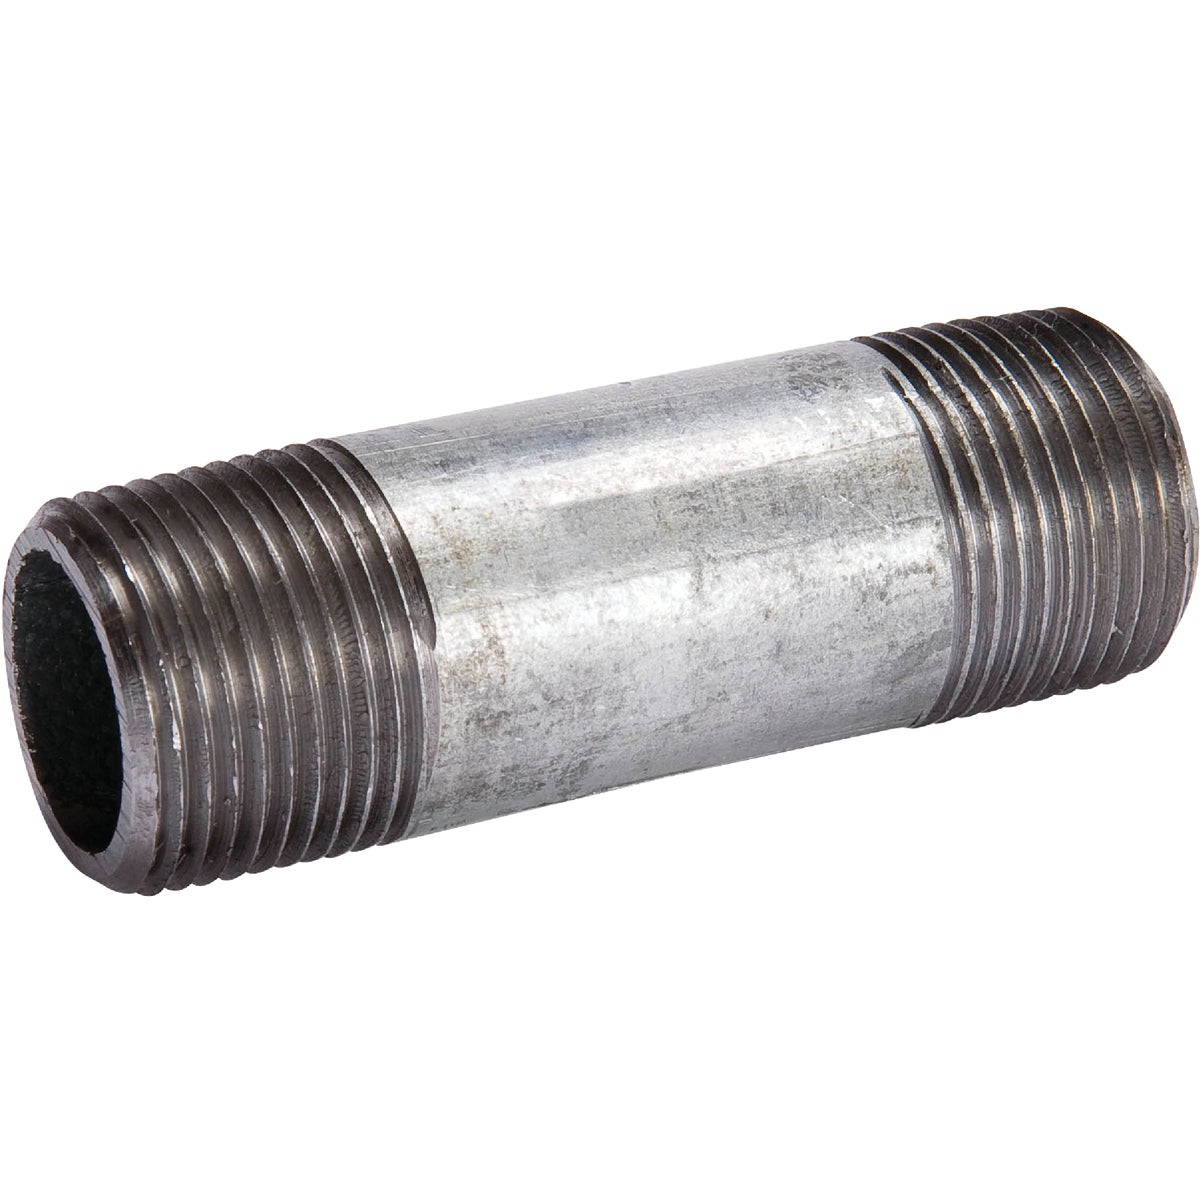 1X2-1/2 GALV NIPPLE - 10603 by Southland Pipe Nippl